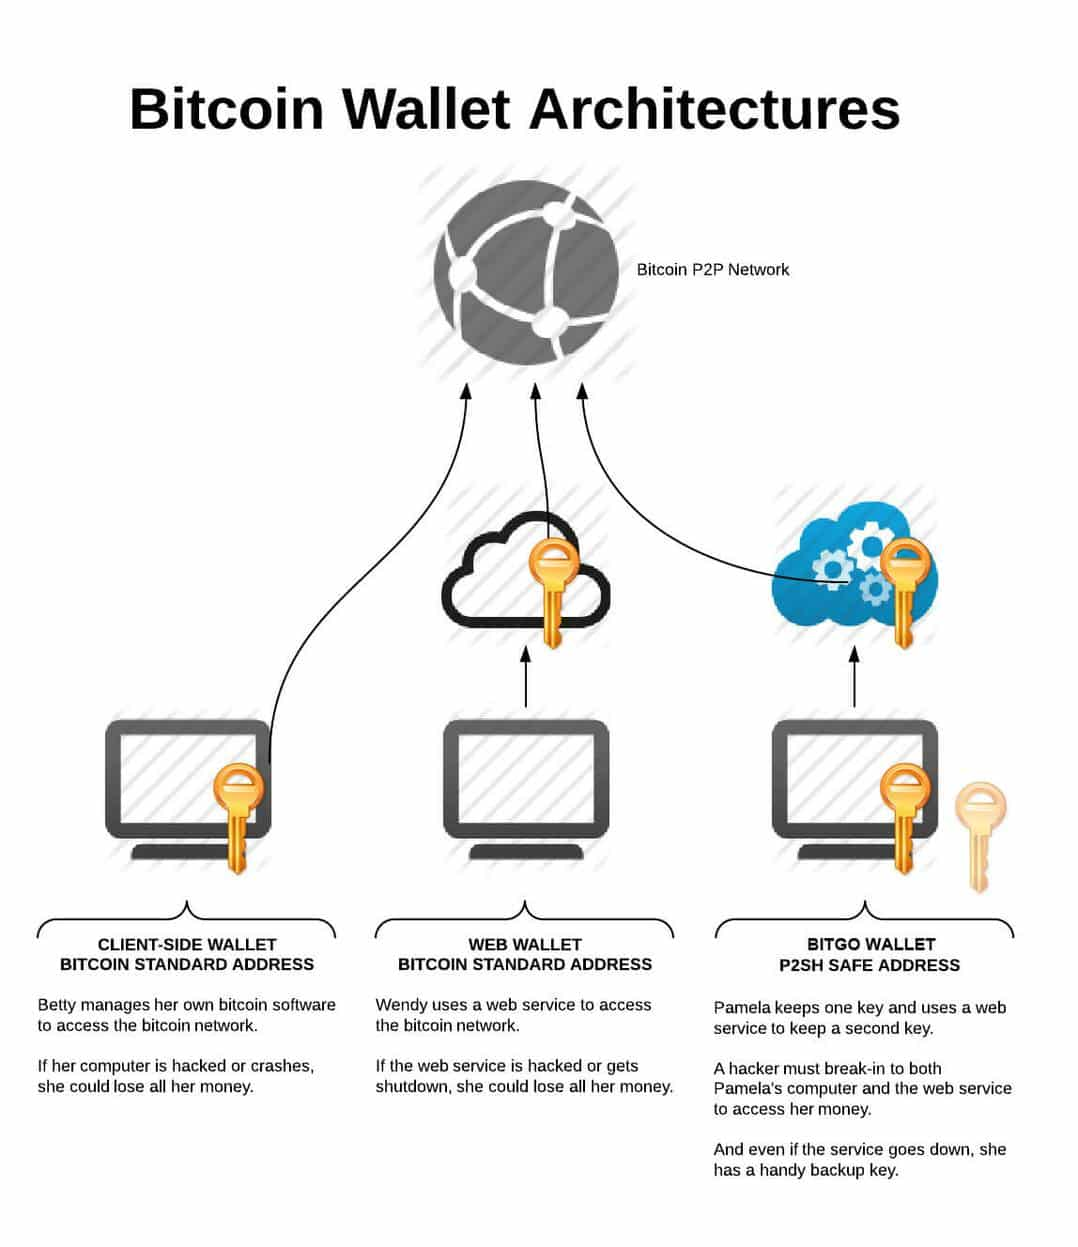 Bitcoin Wallet Architecture Comparison